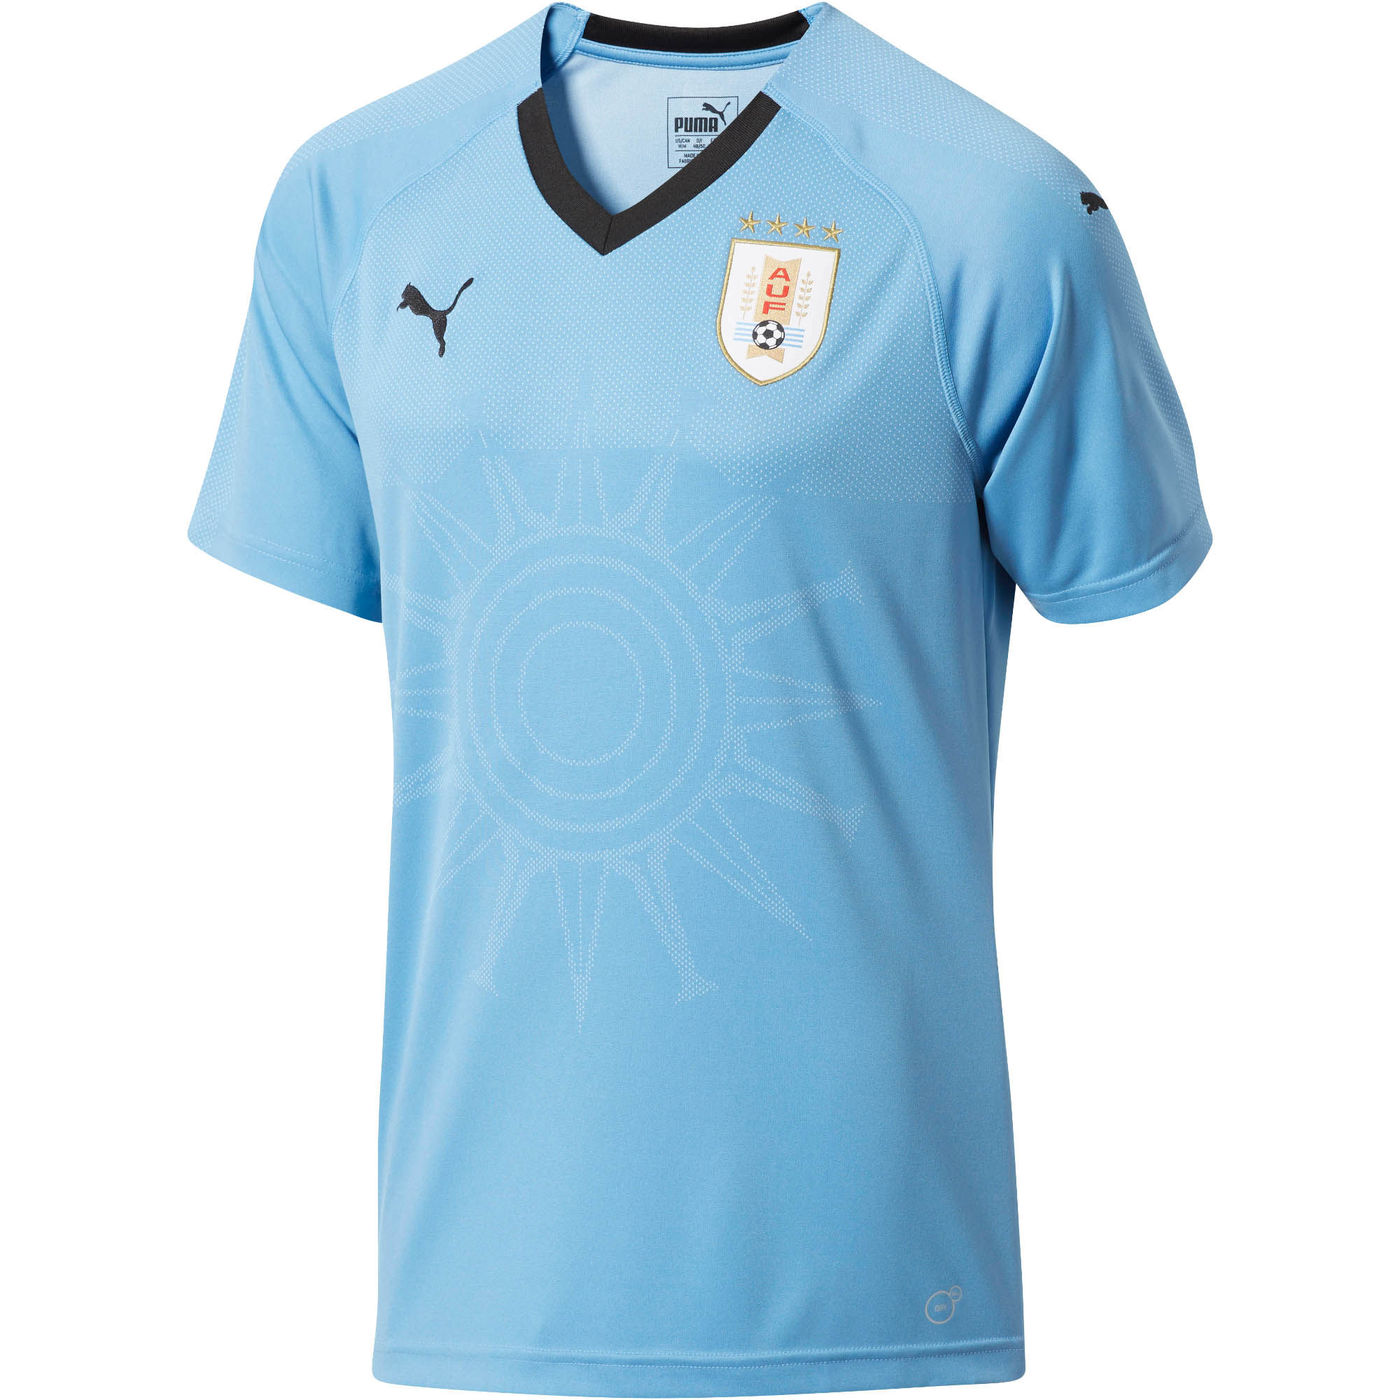 super popular ec58c 9a4e2 2018-2019 Uruguay Home Puma Football Shirt